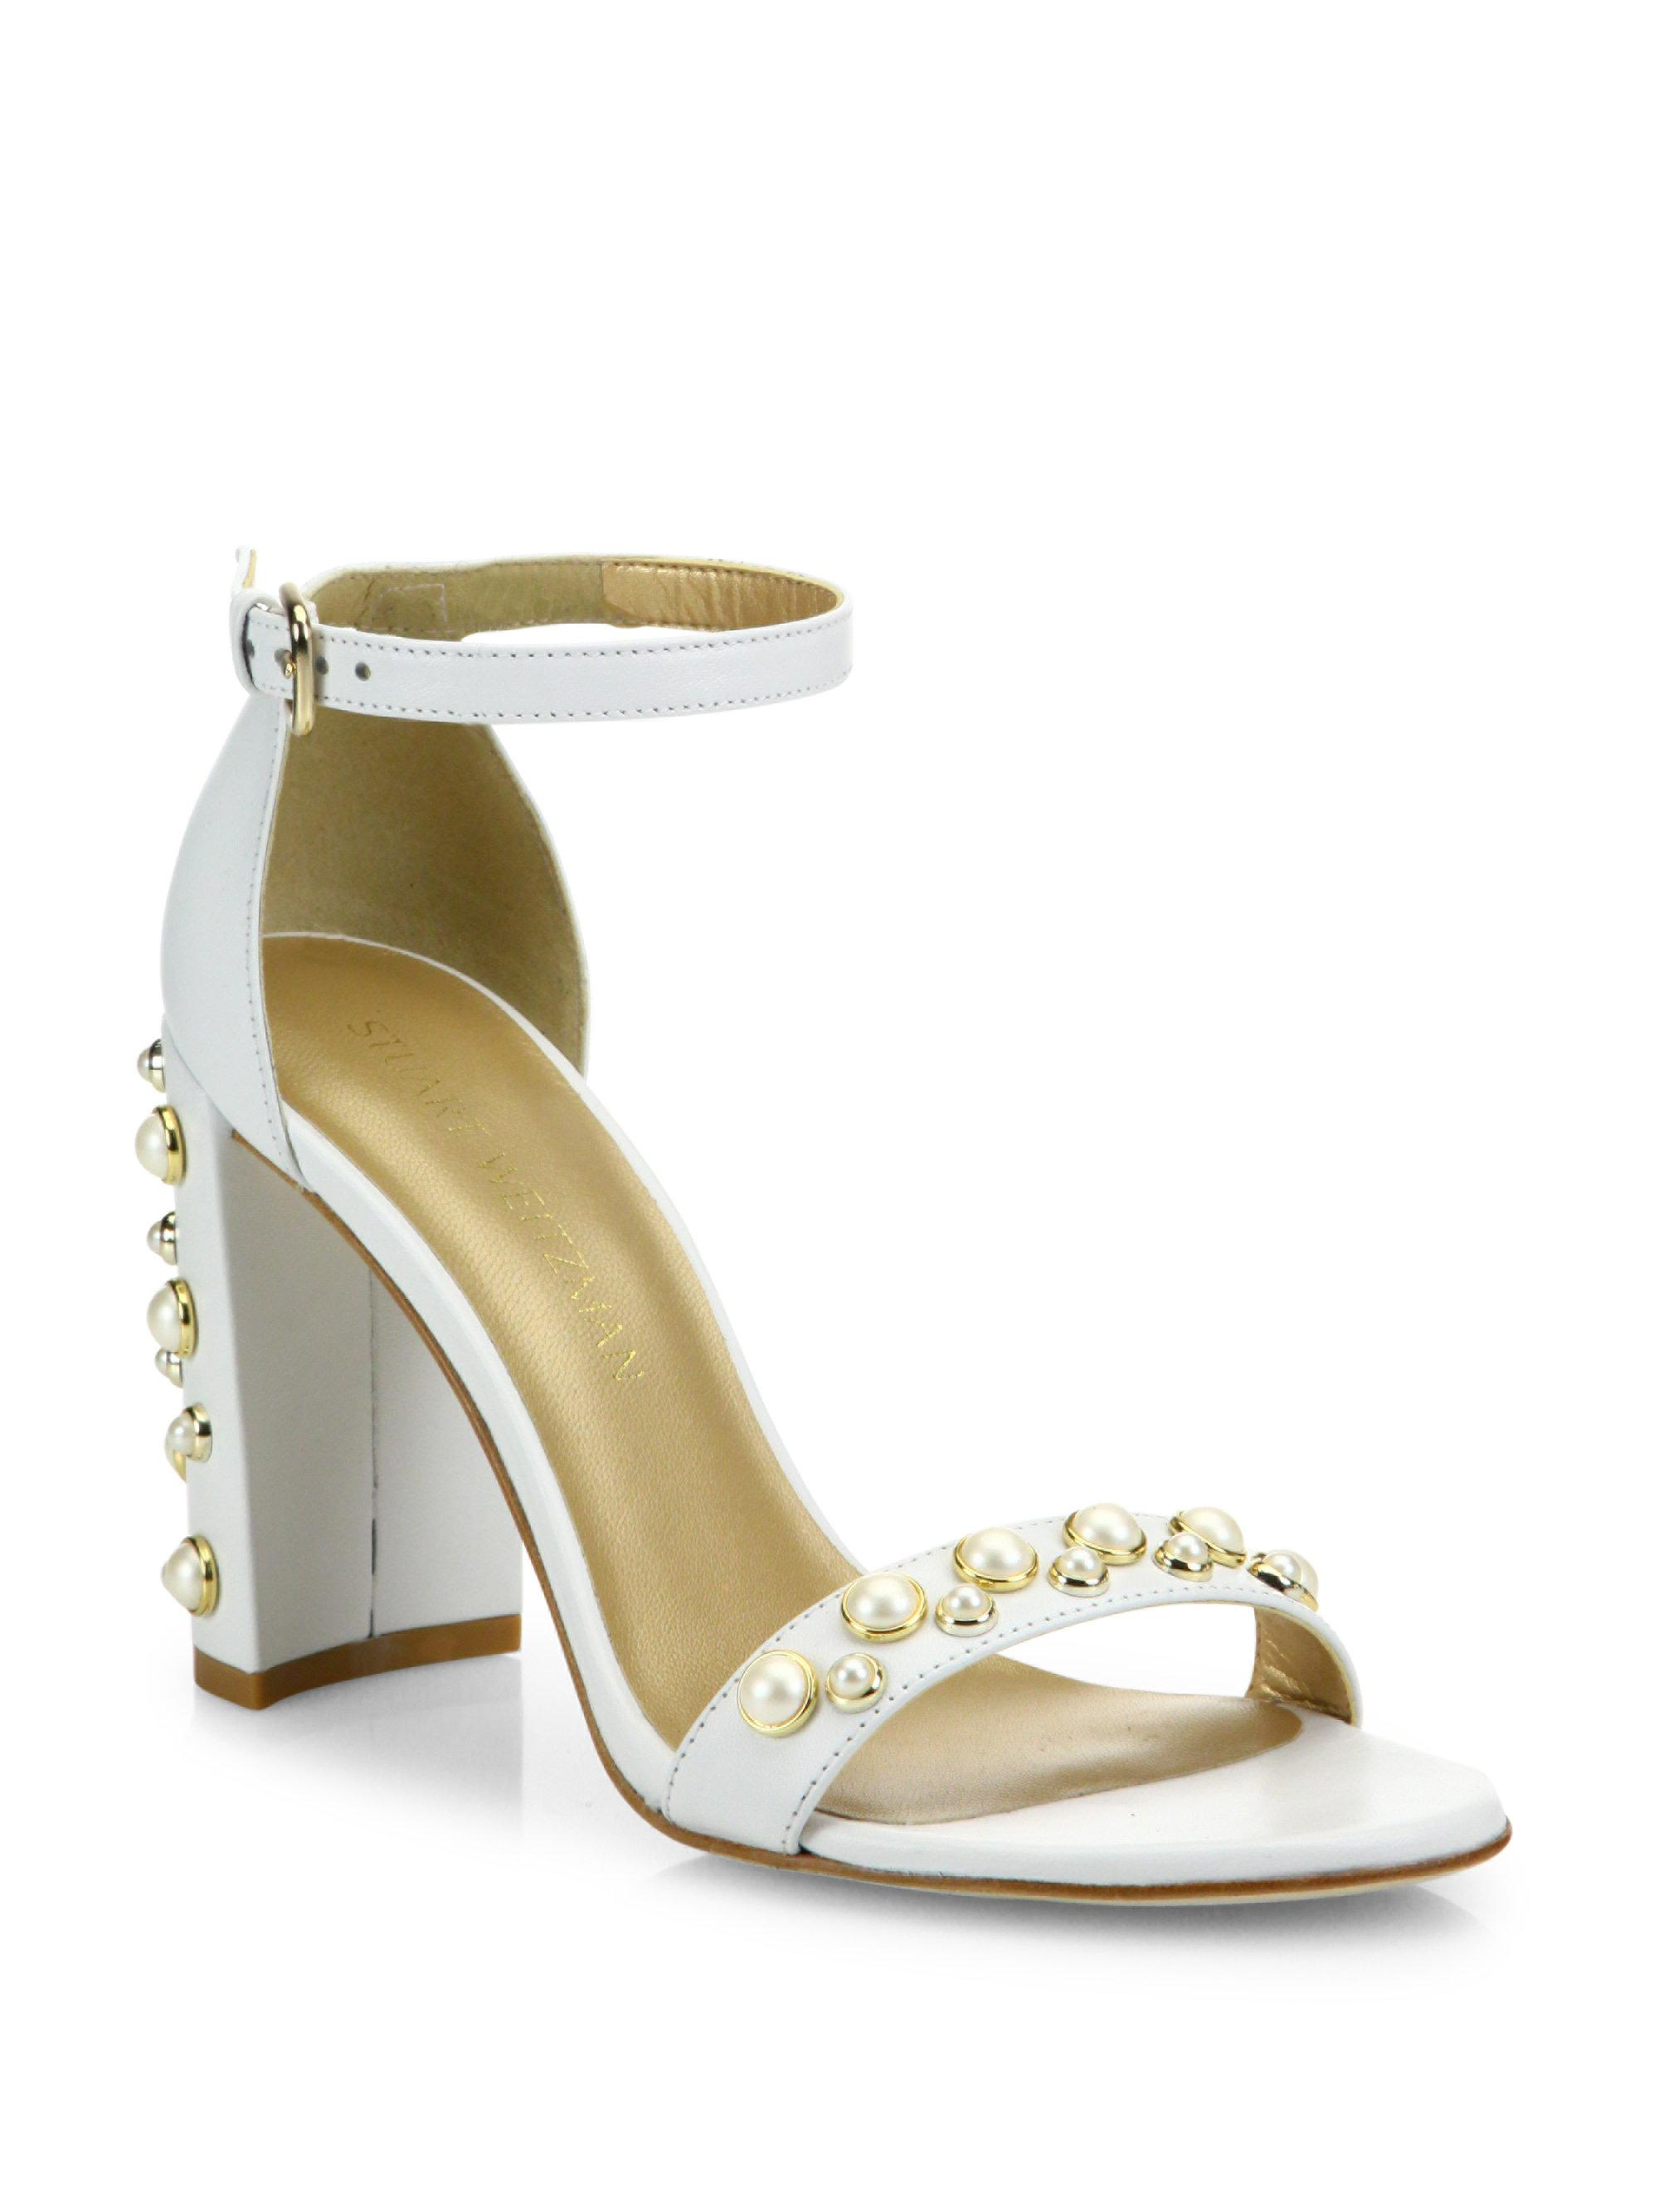 eadf47fcad18 Lyst - Stuart Weitzman Morepearls Studded Leather Ankle Strap ...